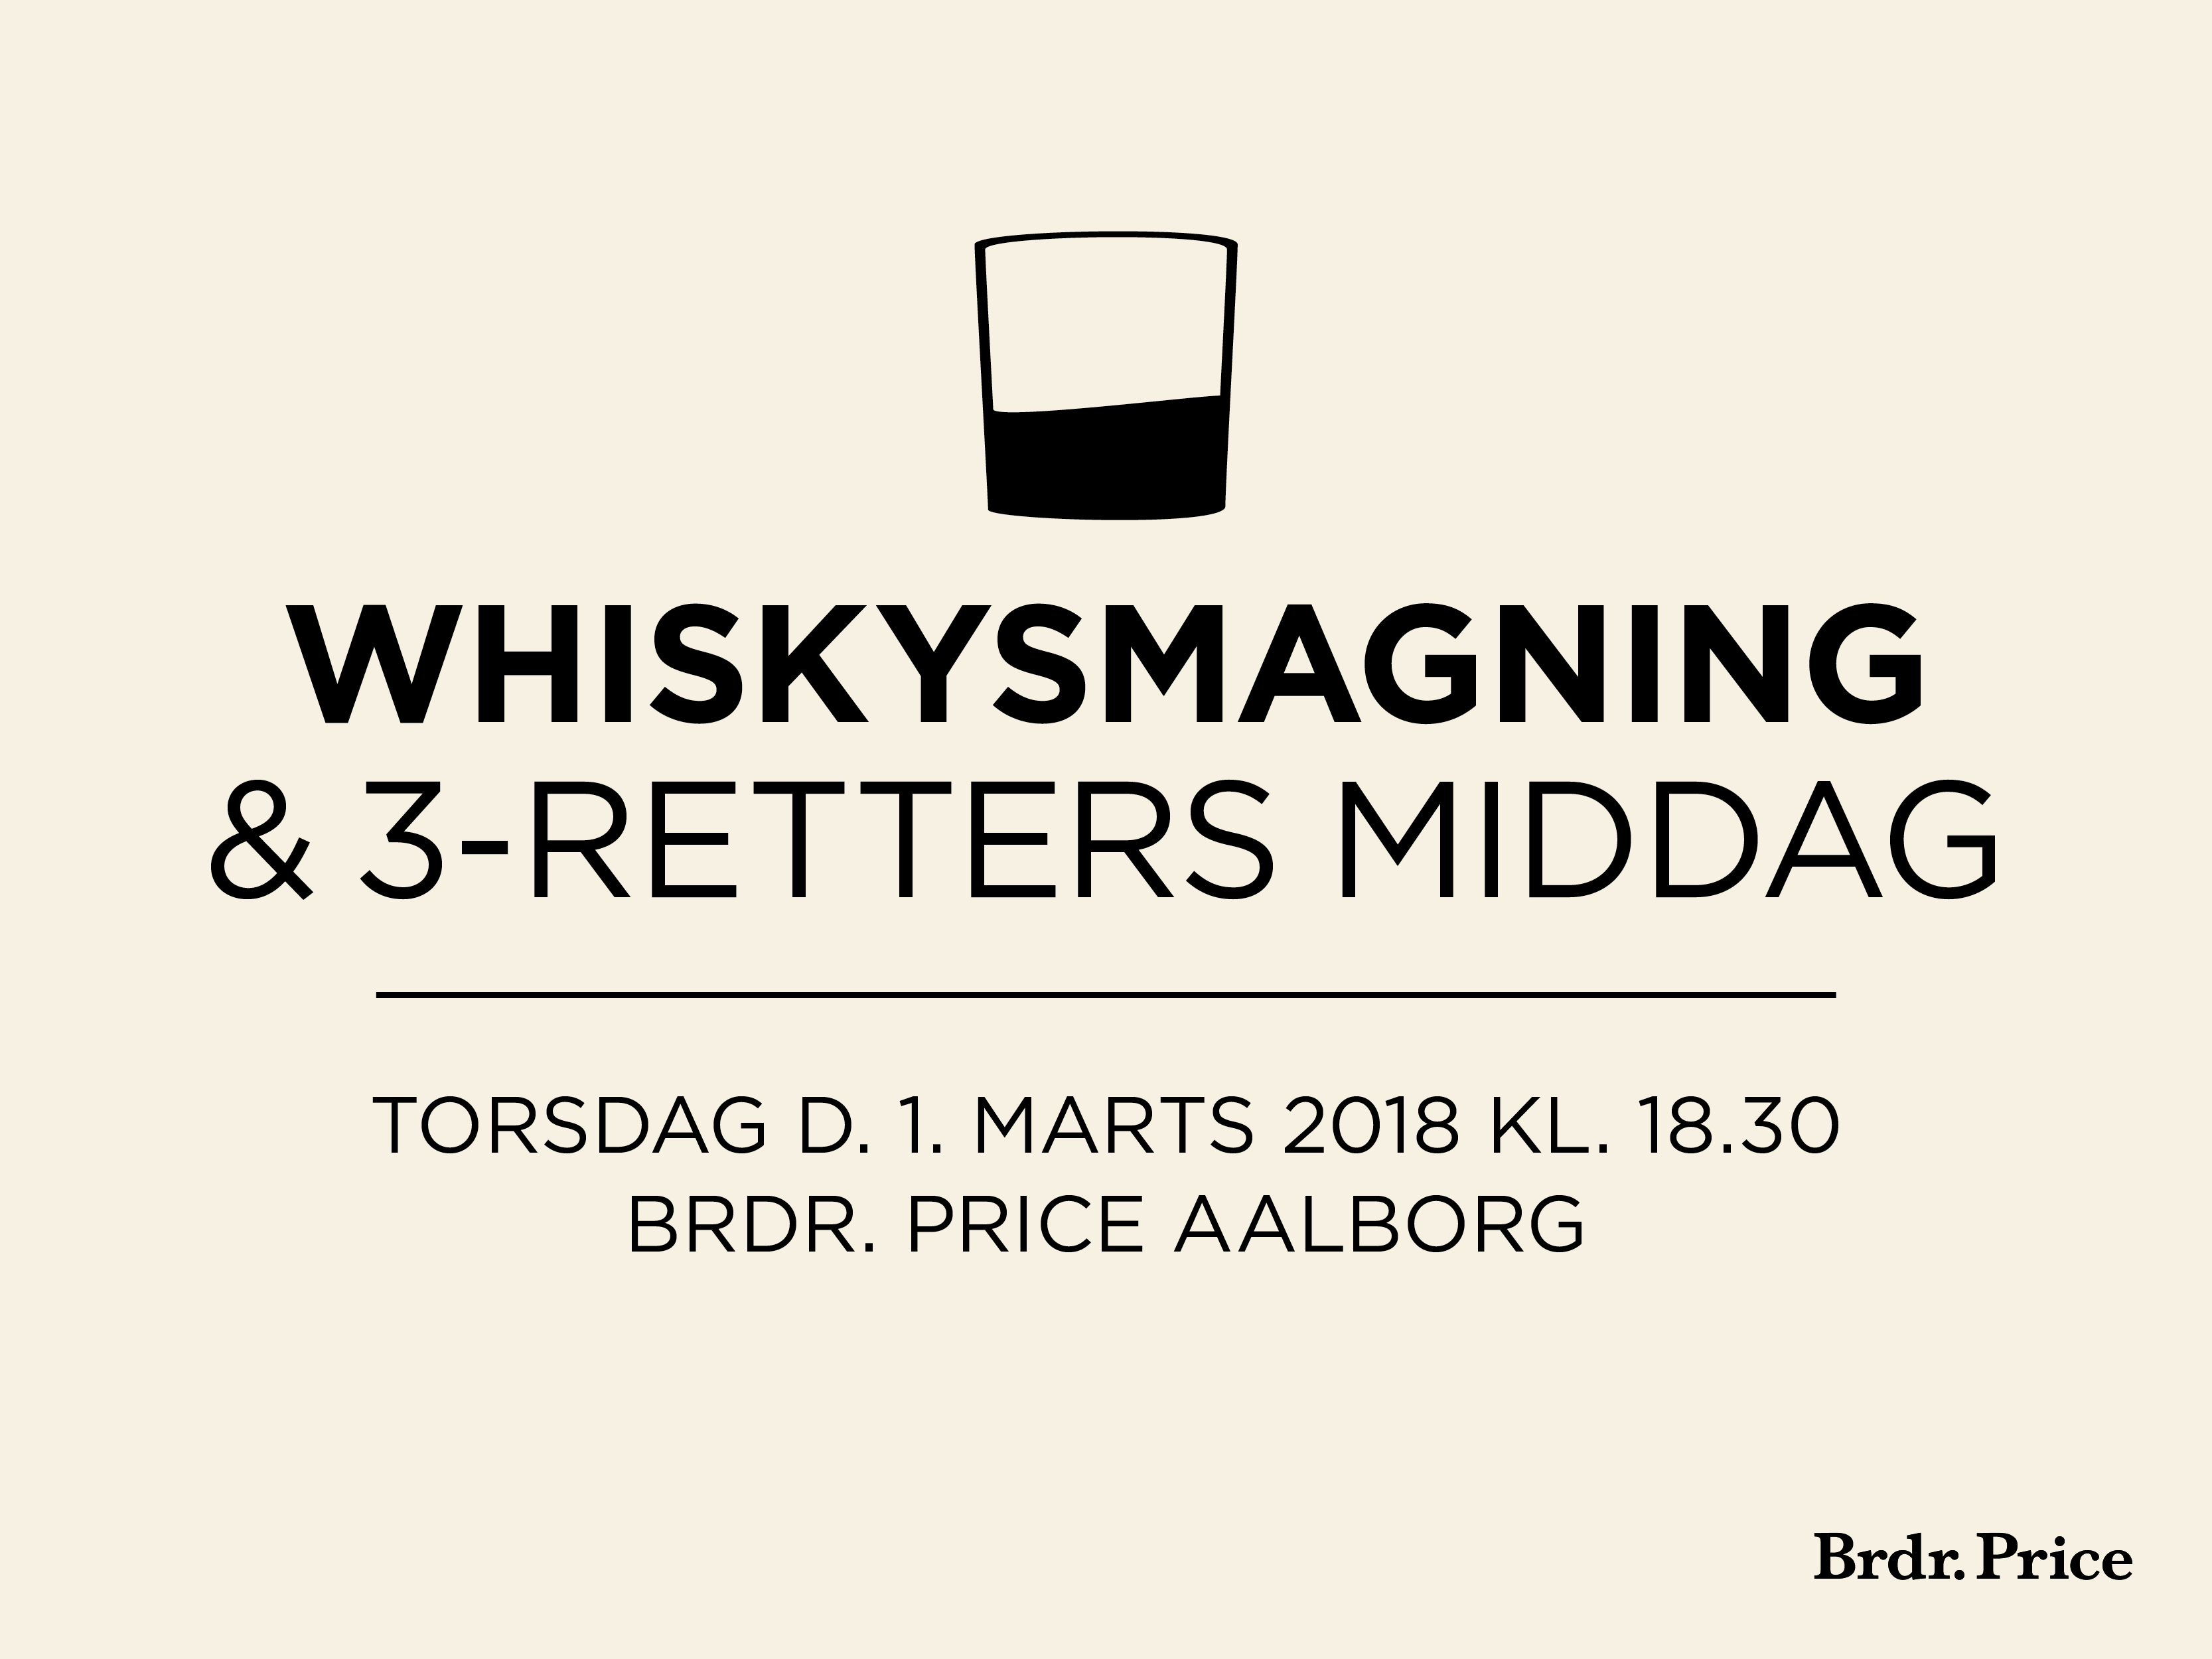 CWO_whiskysmagning_&_3-retters_middag_LifePeaks_billet.png